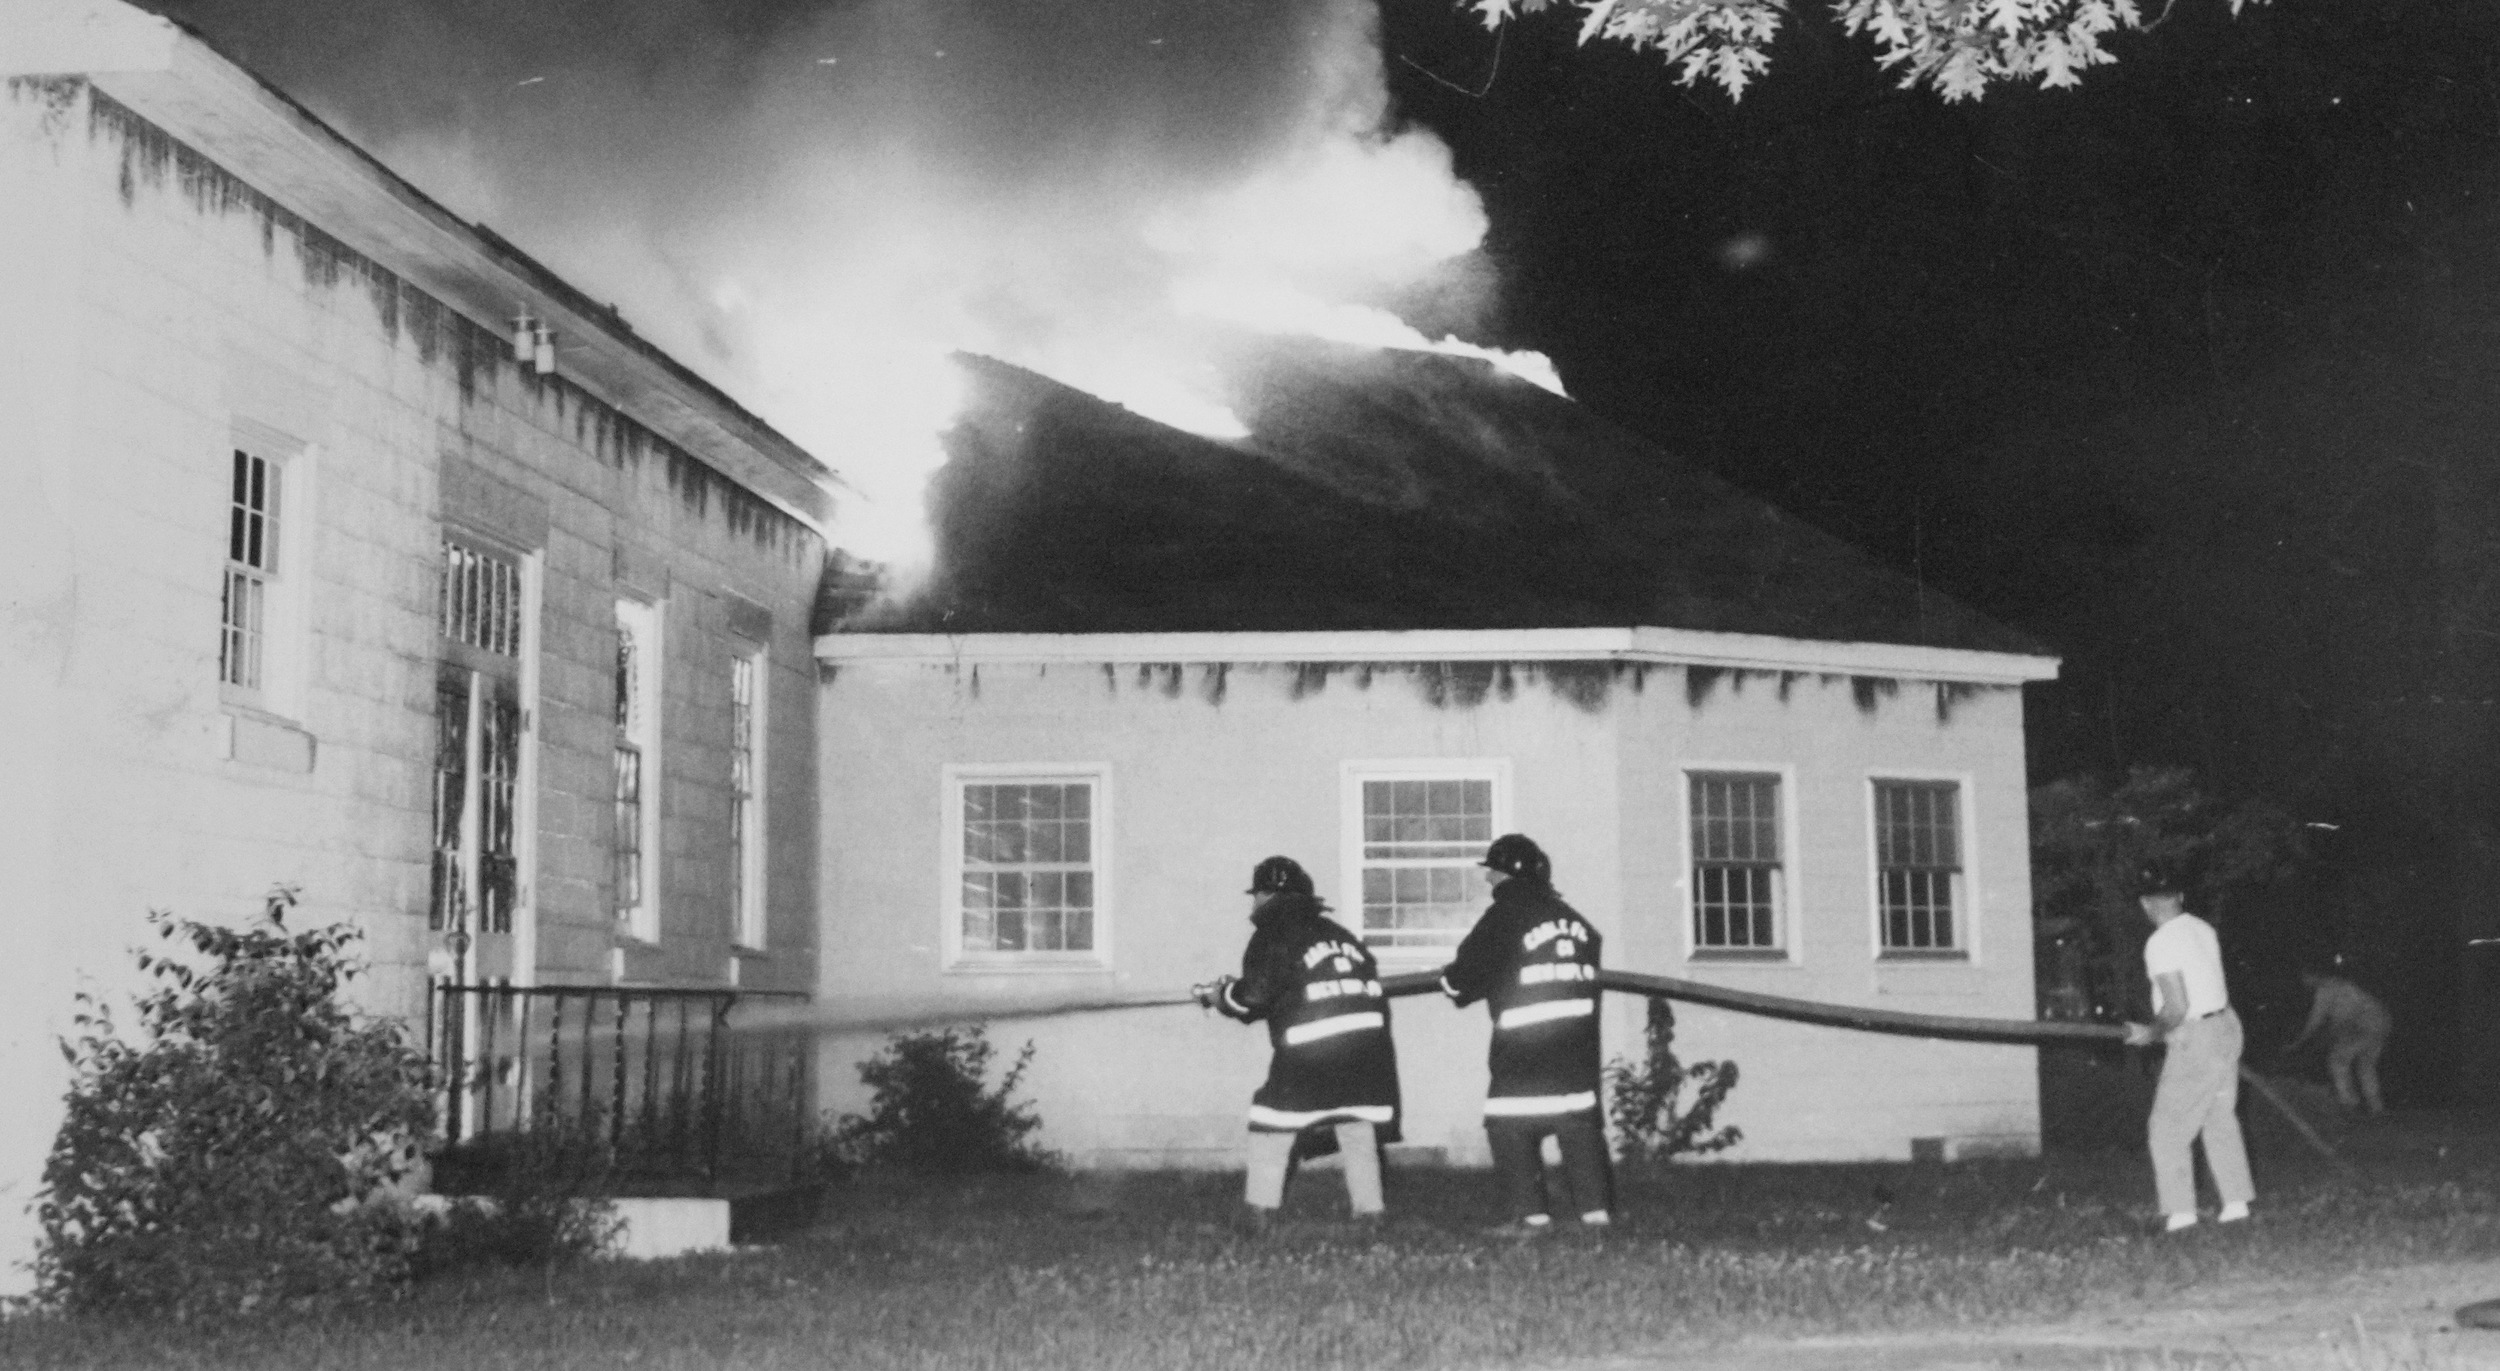 A fire in 1966 destroyed the Educational Building.